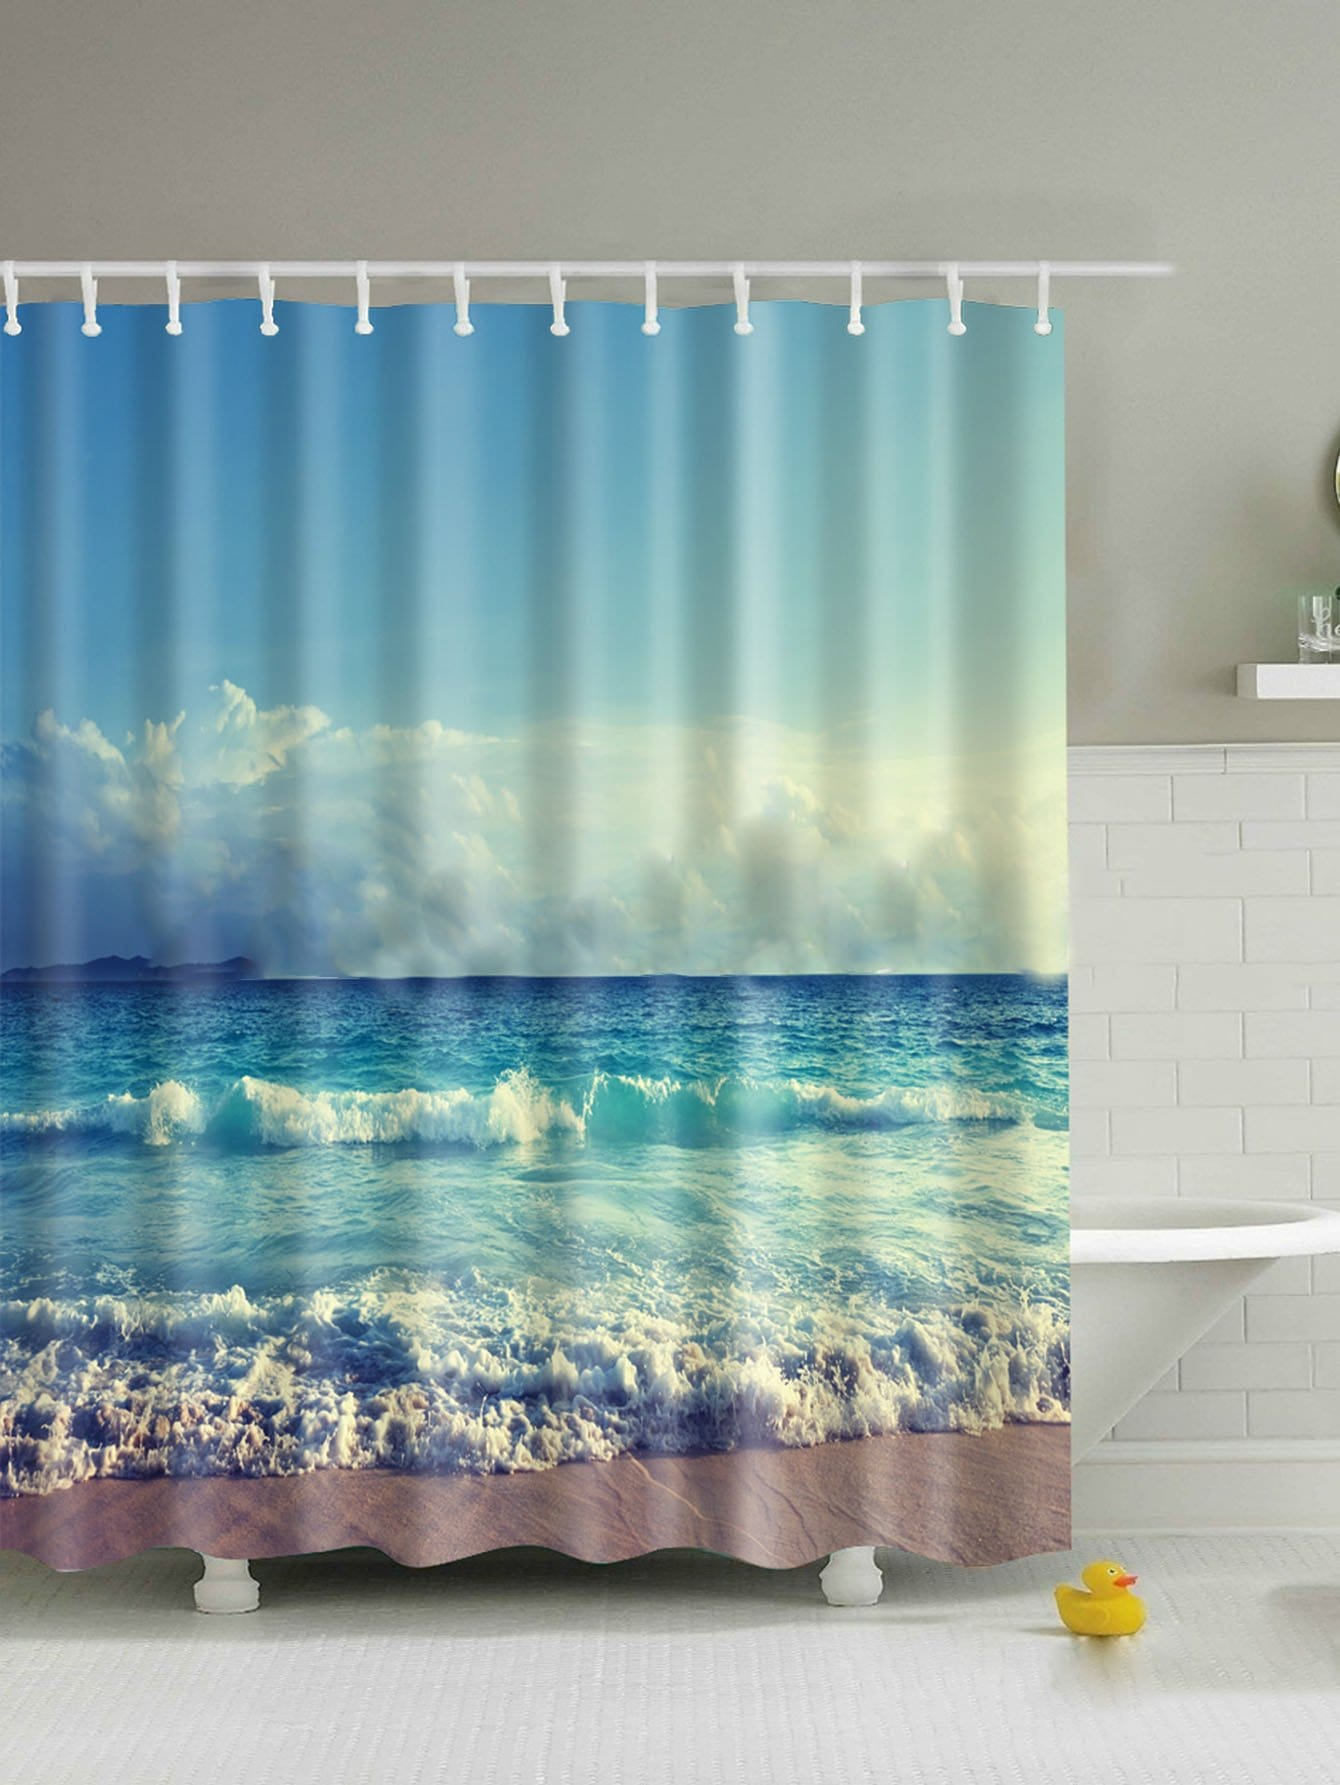 Sea Print Shower Curtain 1pc With Hook 12pcs female silhouette art print shower curtain